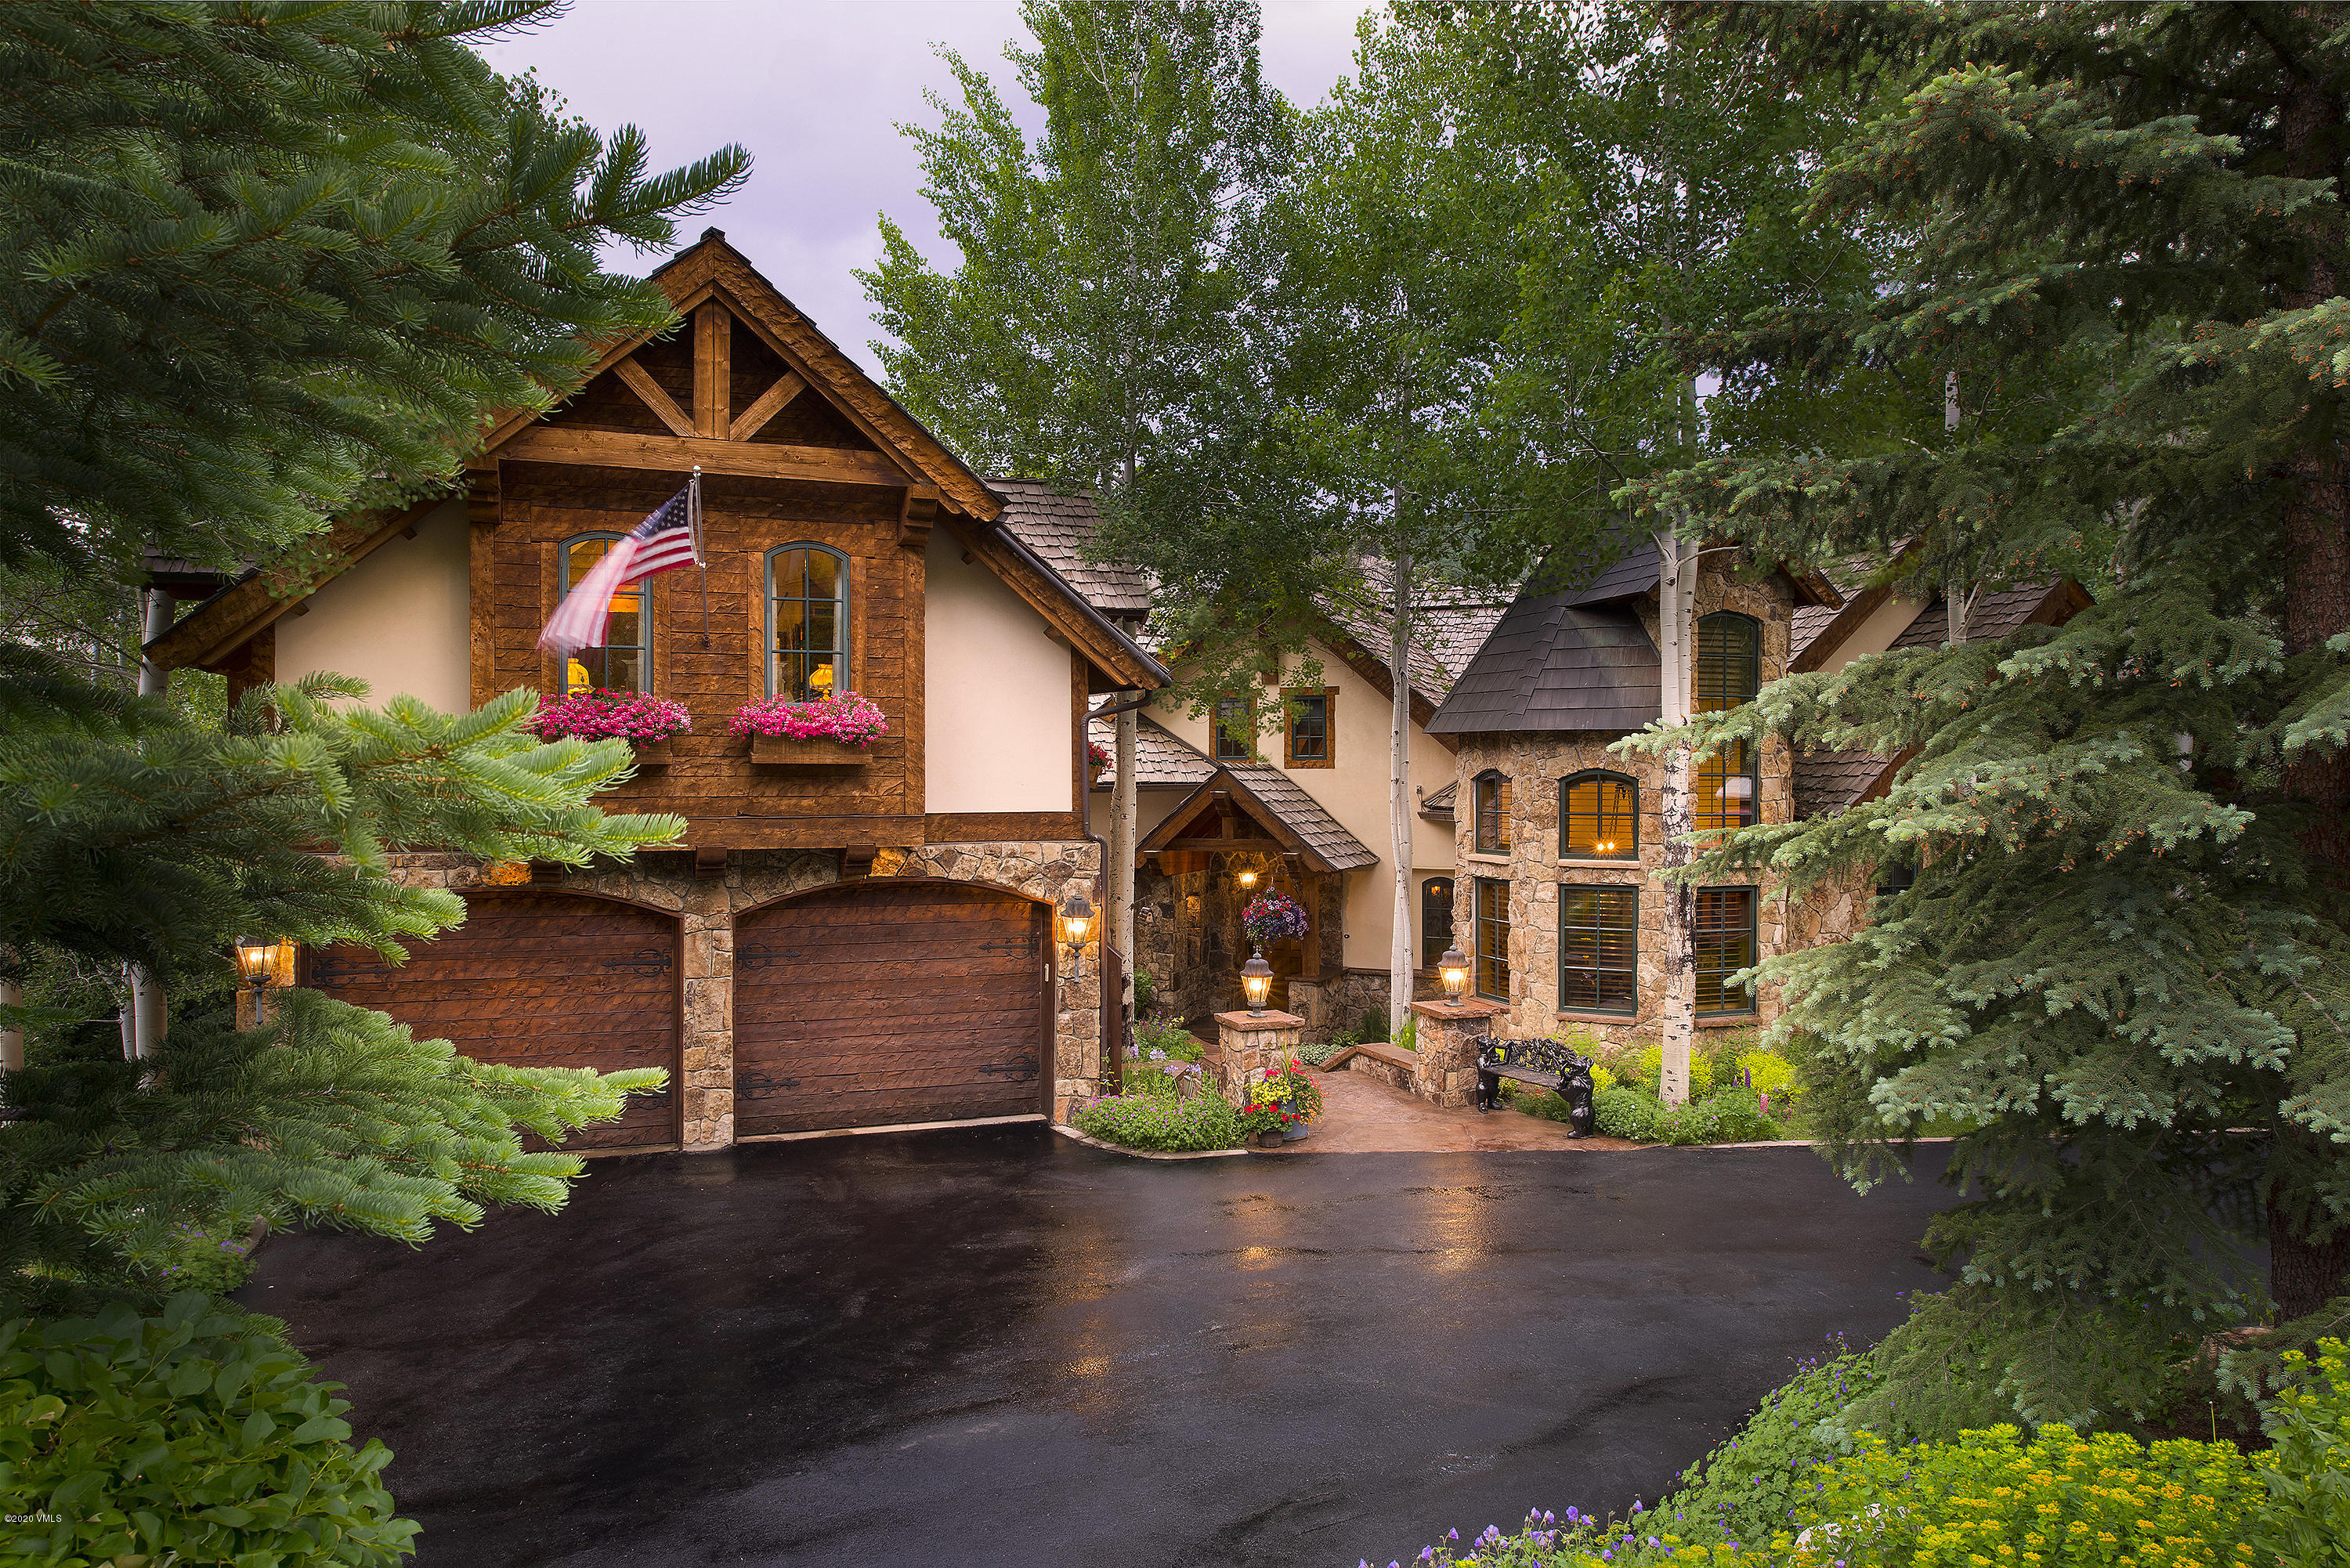 Stunning, custom-built chalet where no expense was spared either in the initial build or the ongoing maintenance of this home, truly maintained fastidiously by the current/original owners. Great room features butternut white walnut wood floors and ceilings with arched buttresses, Colorado moss stone, and expansive floor to ceiling windows framing the view of the ridgeline and mountain side across the way. Master bedroom is in its own private wing of the home with its own deck, large walk-in closet, and an oversized bathroom with jetted tub, steam shower, and towel warmers. Spacious dining room perfect for entertaining and attached kitchen fit for catering and cooking for the masses, with cozy adjoined breakfast nook. Custom millwork and cabinetry throughout. Lower level features a wine cellar, family room, access to outdoor spaces including a covered hot tub, fitness room with a sauna, and all secondary bedroom suites that feature en-suite bathrooms, large walk-in closets, fireplaces, and solid double doors to enter. Upper level bunk room is perfect for kids to gather and is separate from all other bedrooms. Additional loft area is a perfect location for remote office space. Interior and exterior are thoughtfully designed, and all high-quality finishes installed throughout. Sold exquisitely furnished and turn-key.